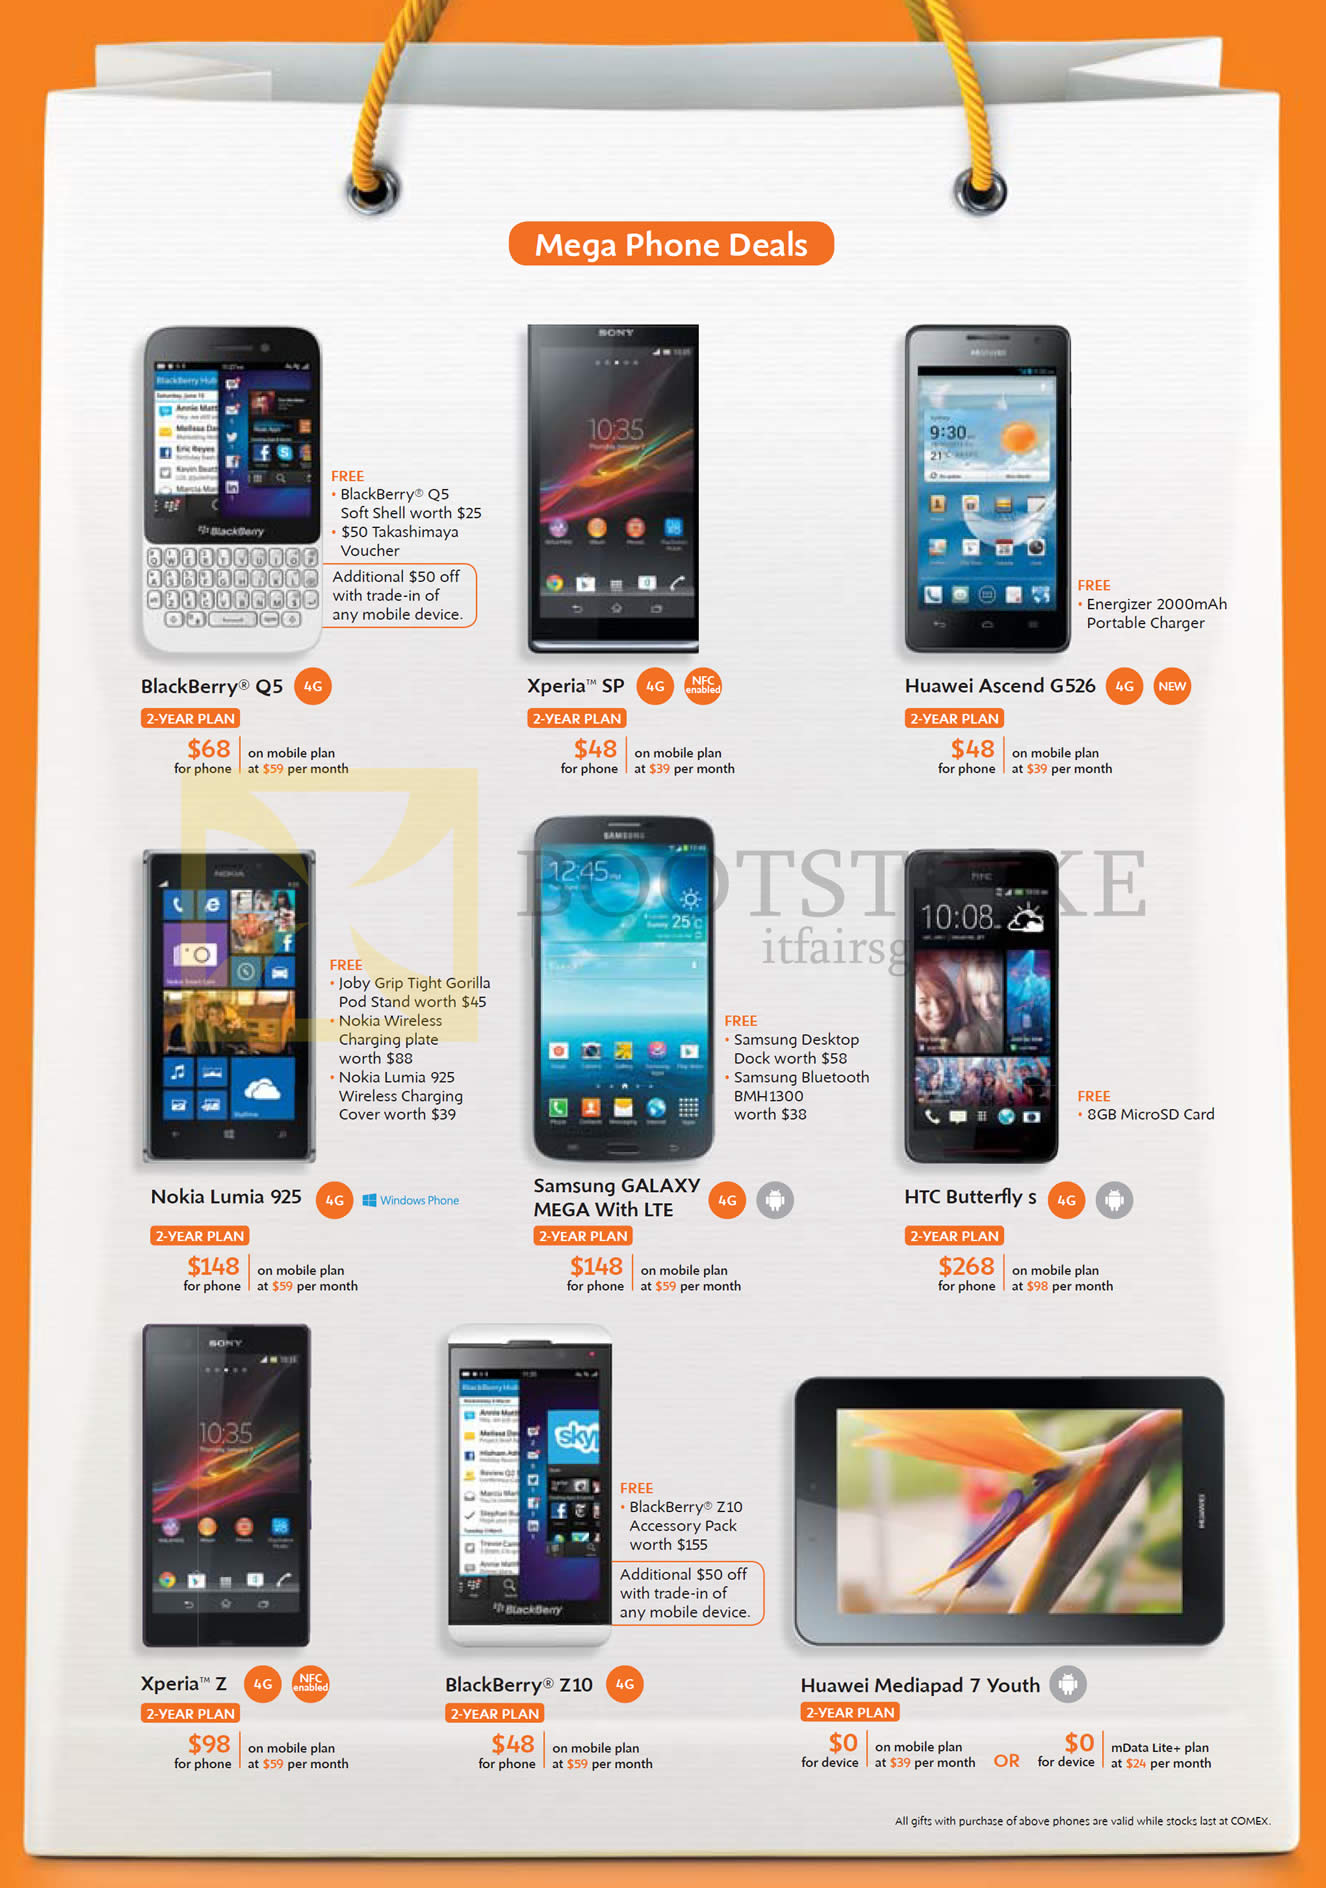 COMEX 2013 Price List Image Brochure Of M1 Mobile Blackberry Q5 Z10 Sony Xperia